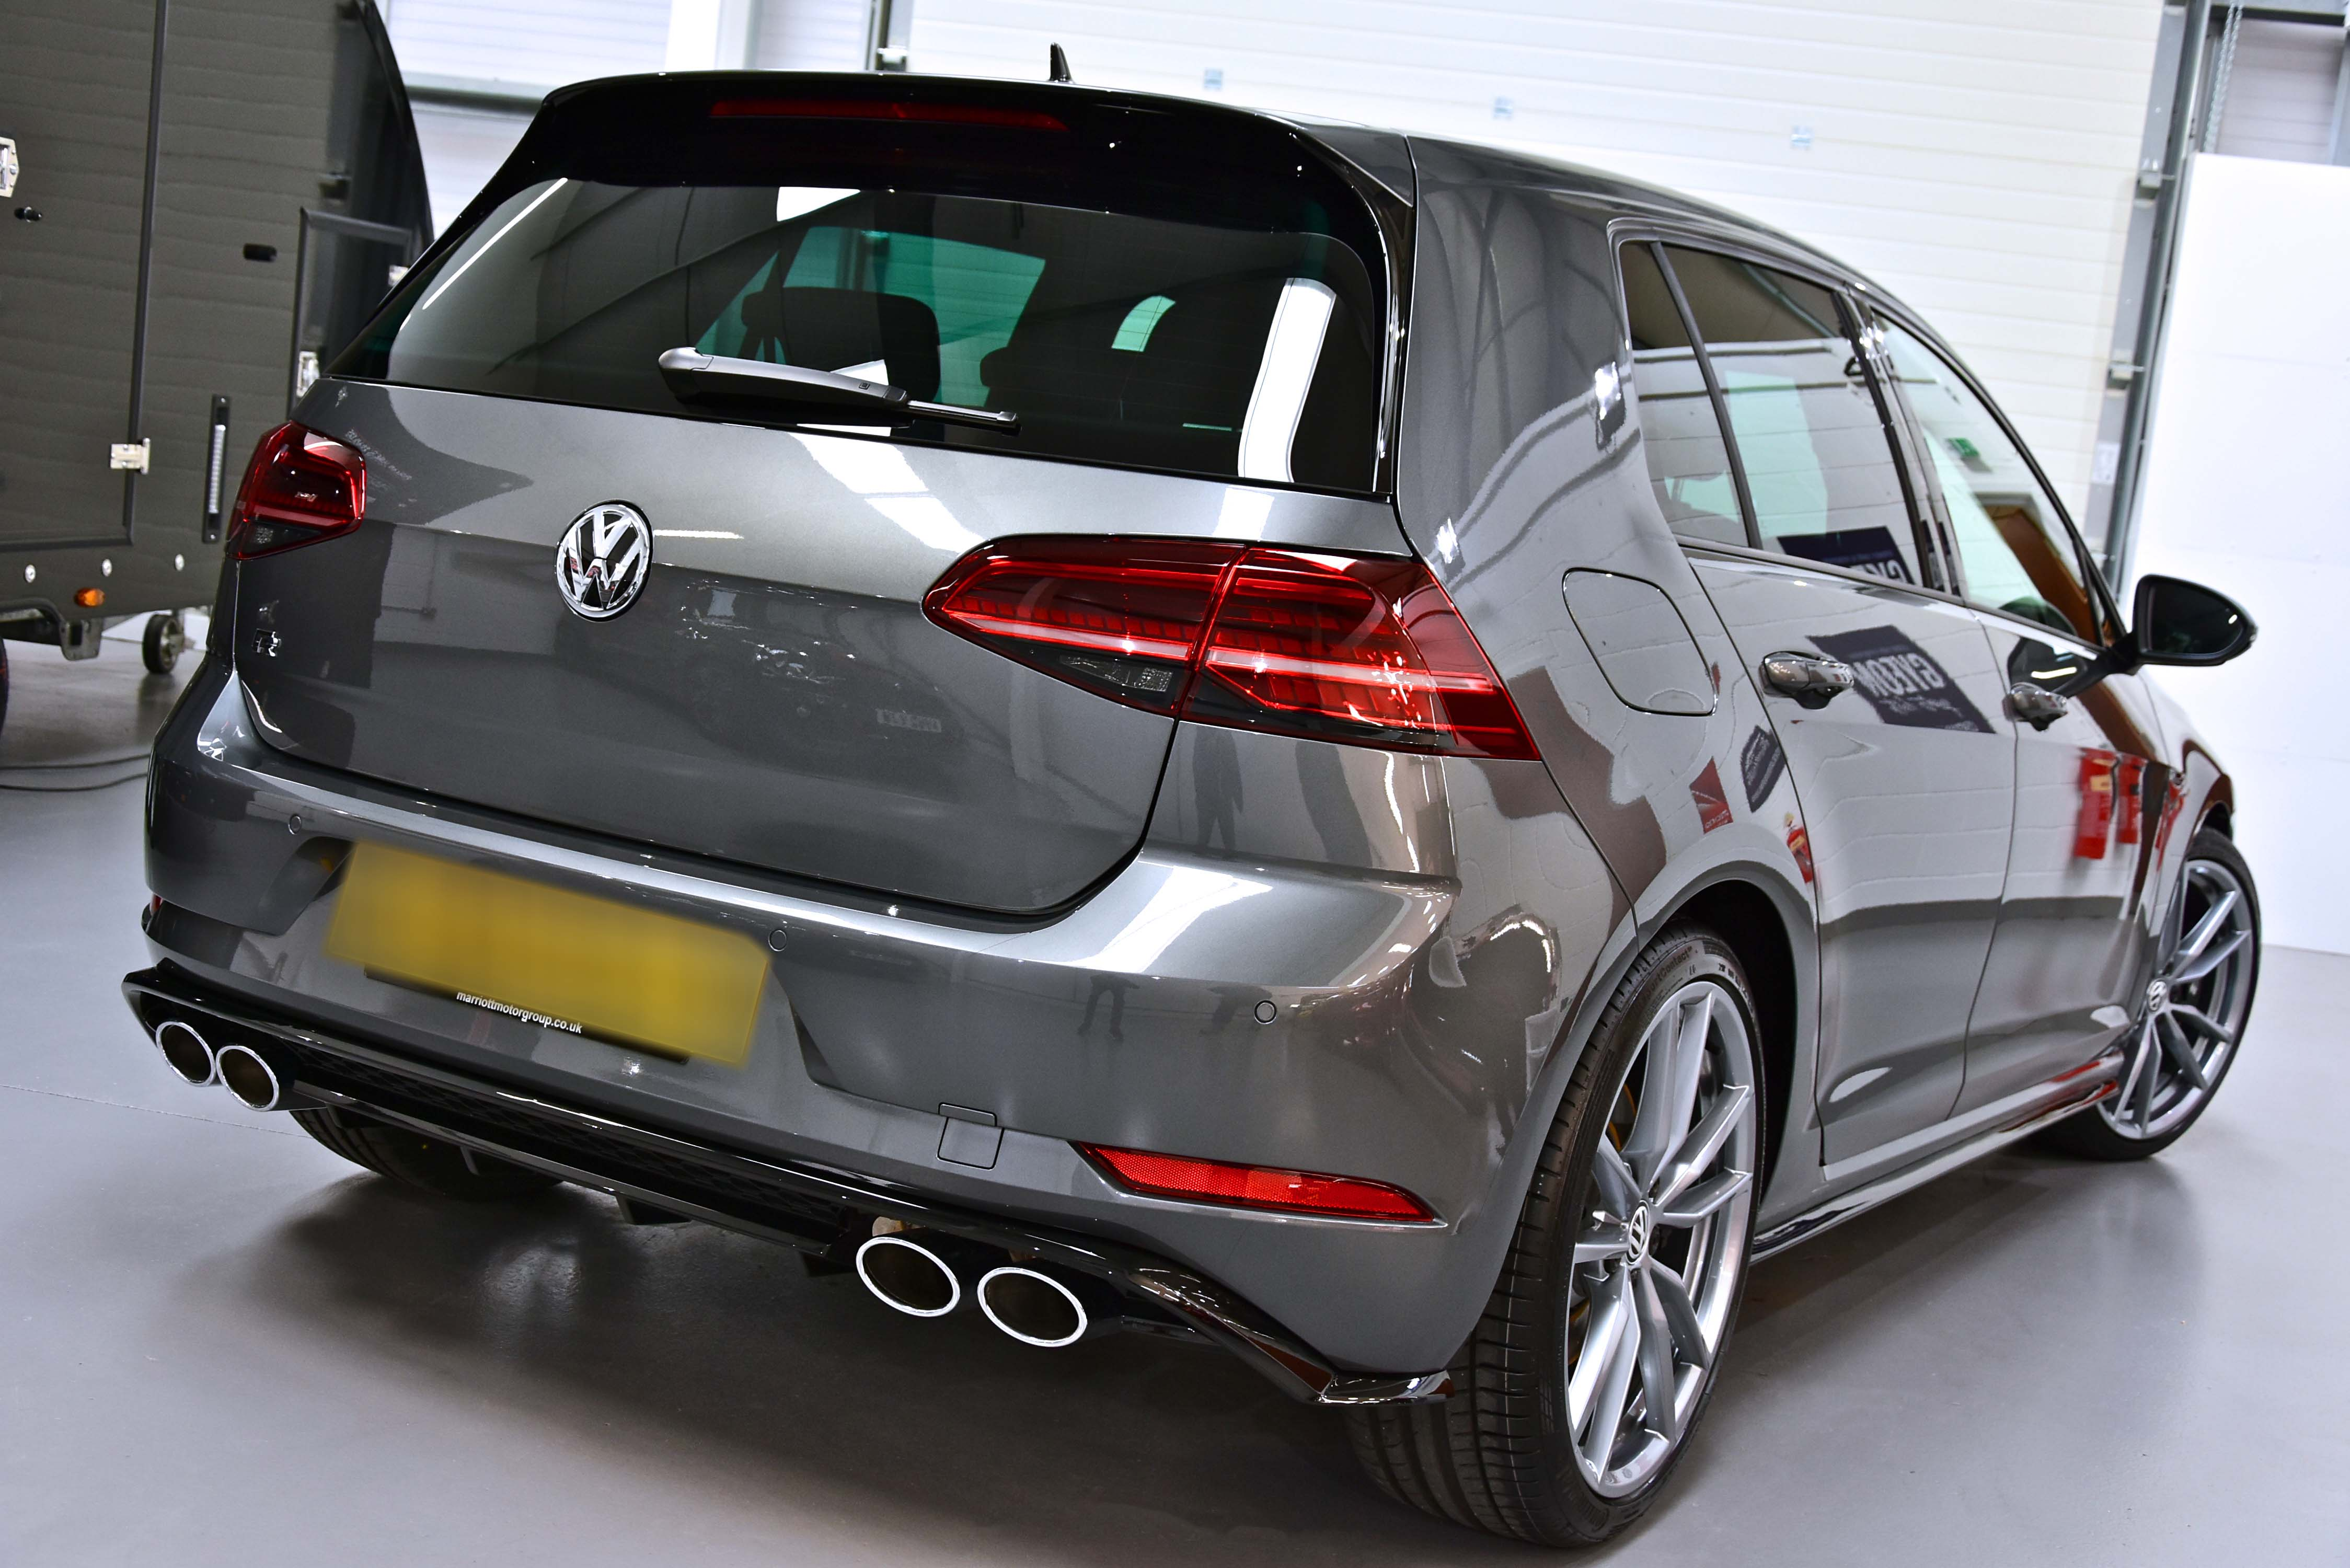 VW Golf R New Car Enhancement and Protection Detail with Feynlab Self Heal Plus and XPEL PPF